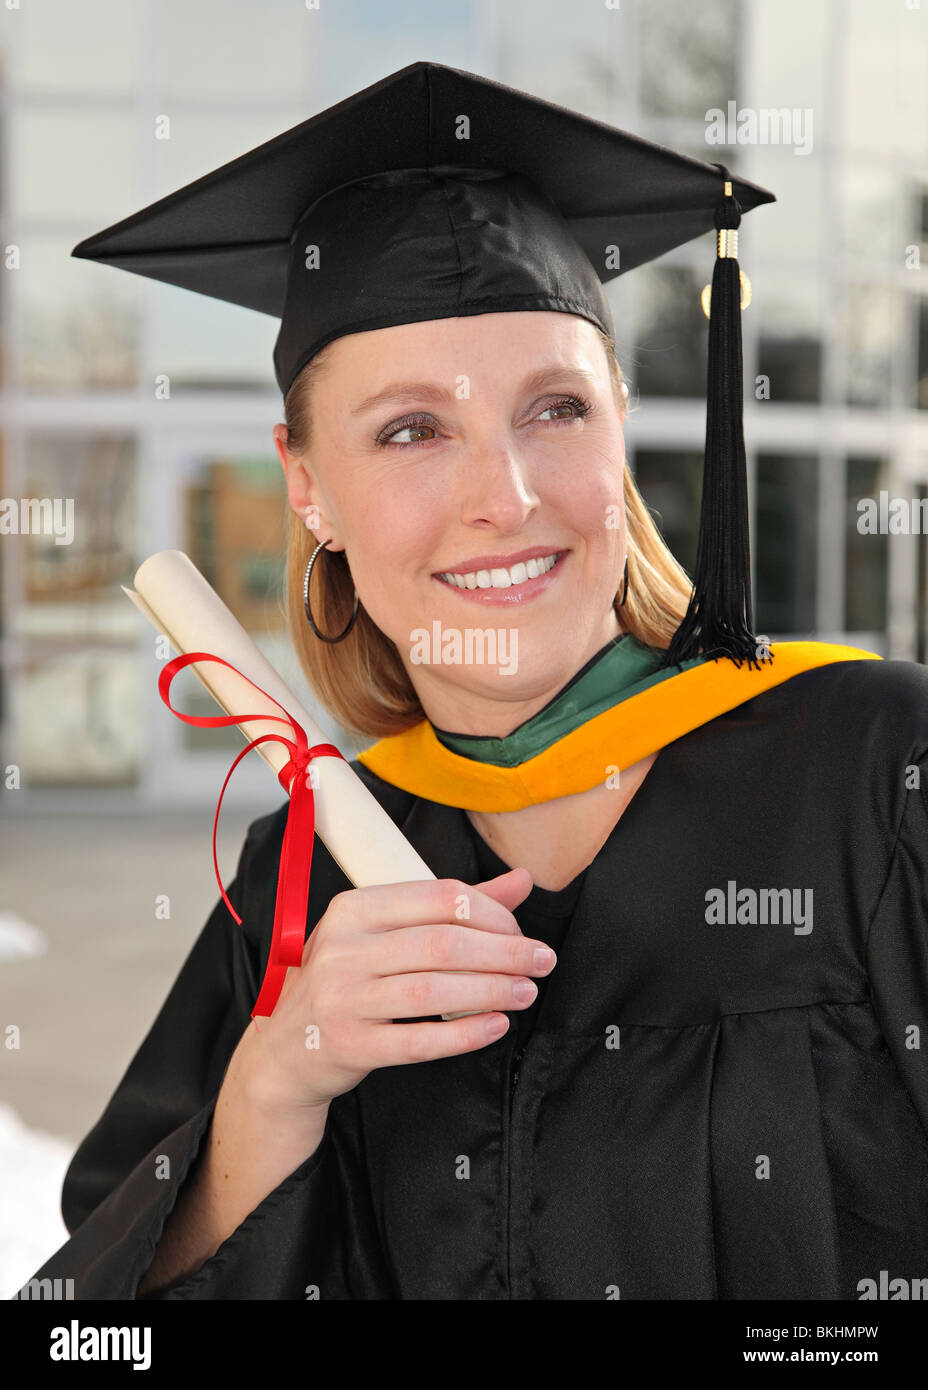 attractive blond woman in graduation uniform holding a diploma at the university - Stock Image